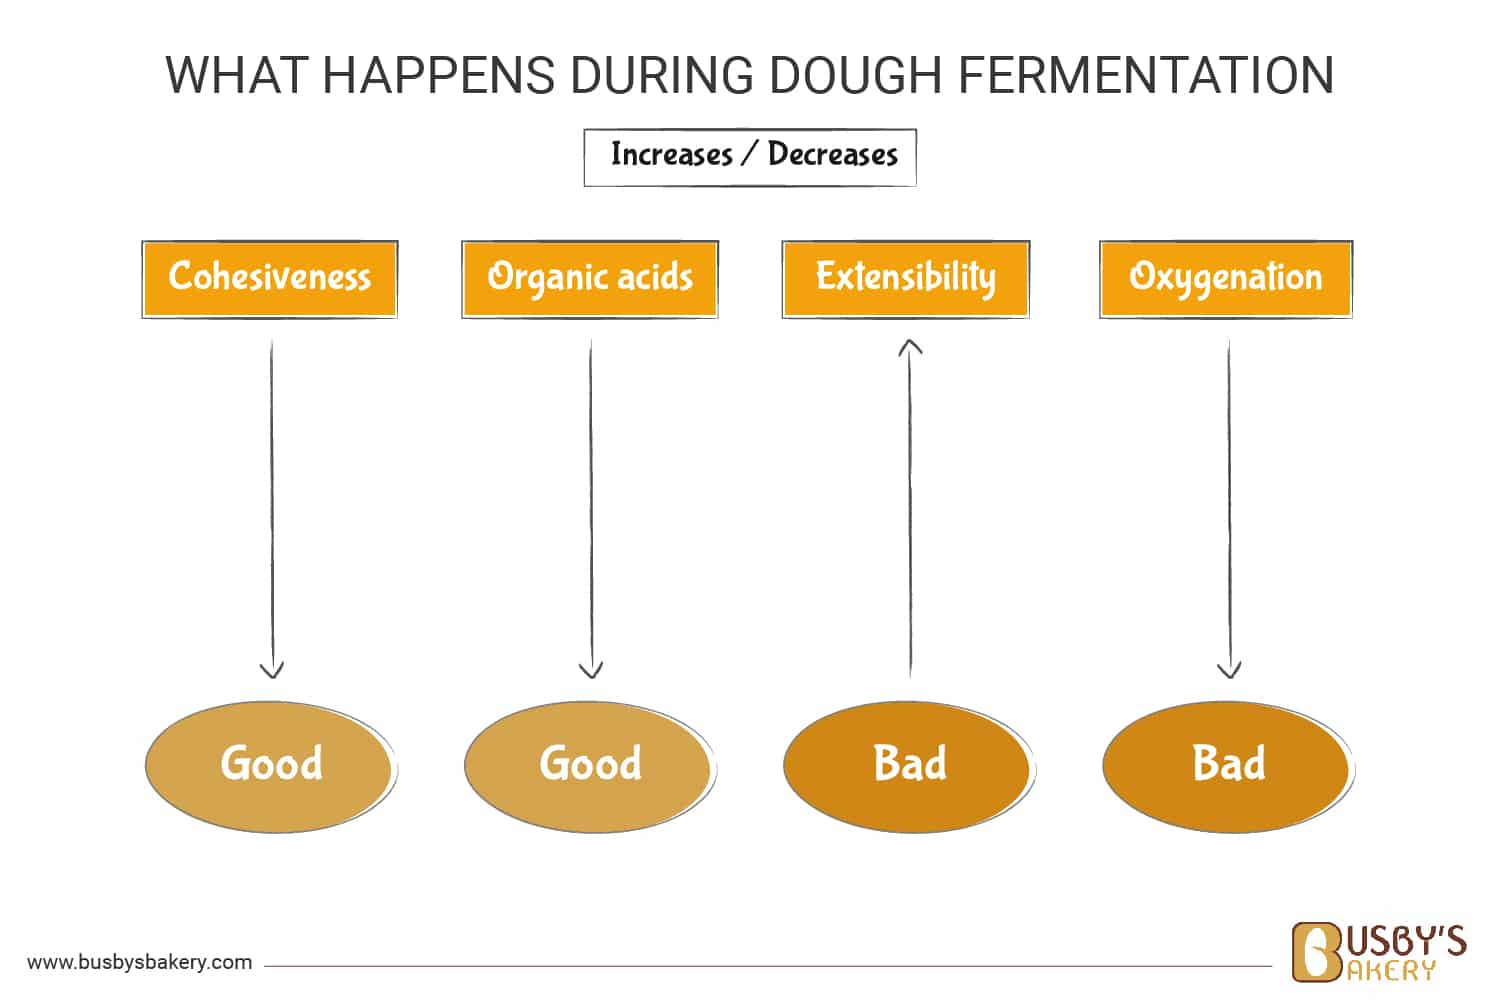 How the length of fermentation changes the properties in the bread diagram